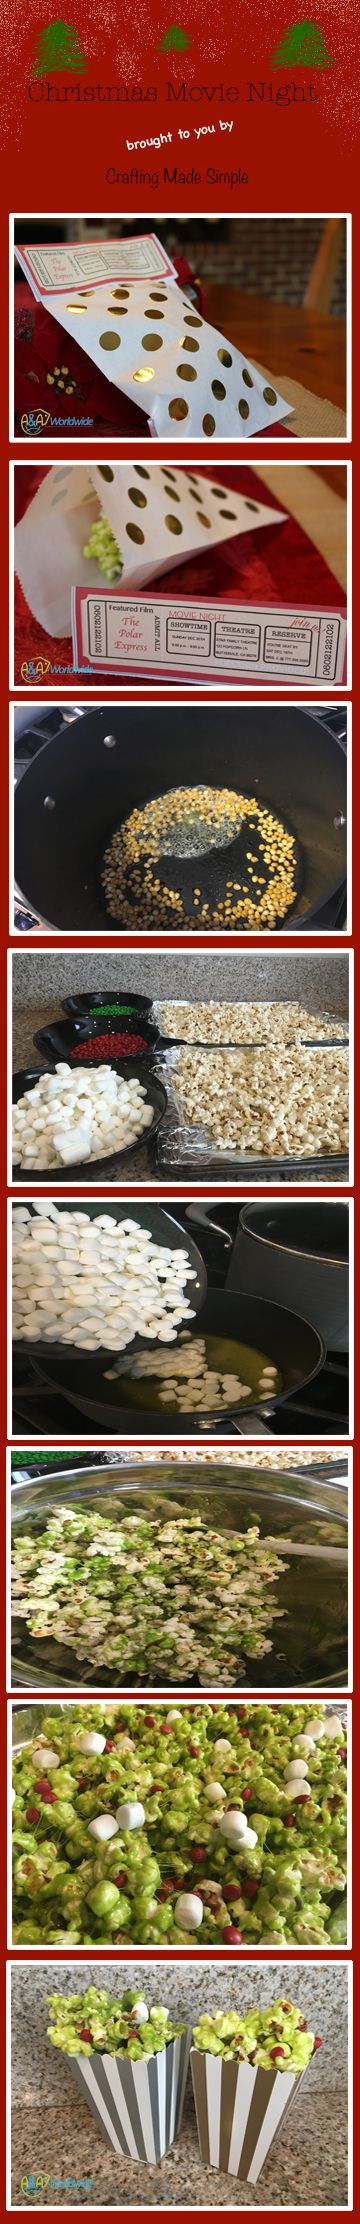 Crafting Made Simple ∫ Invite friends and family to a Christmas Movie Night to see the Polar Express or better yet watch the Grinch, while eating Grinch Popcorn! Check out how easy it is at our blog . . . #HolidayMovieNight